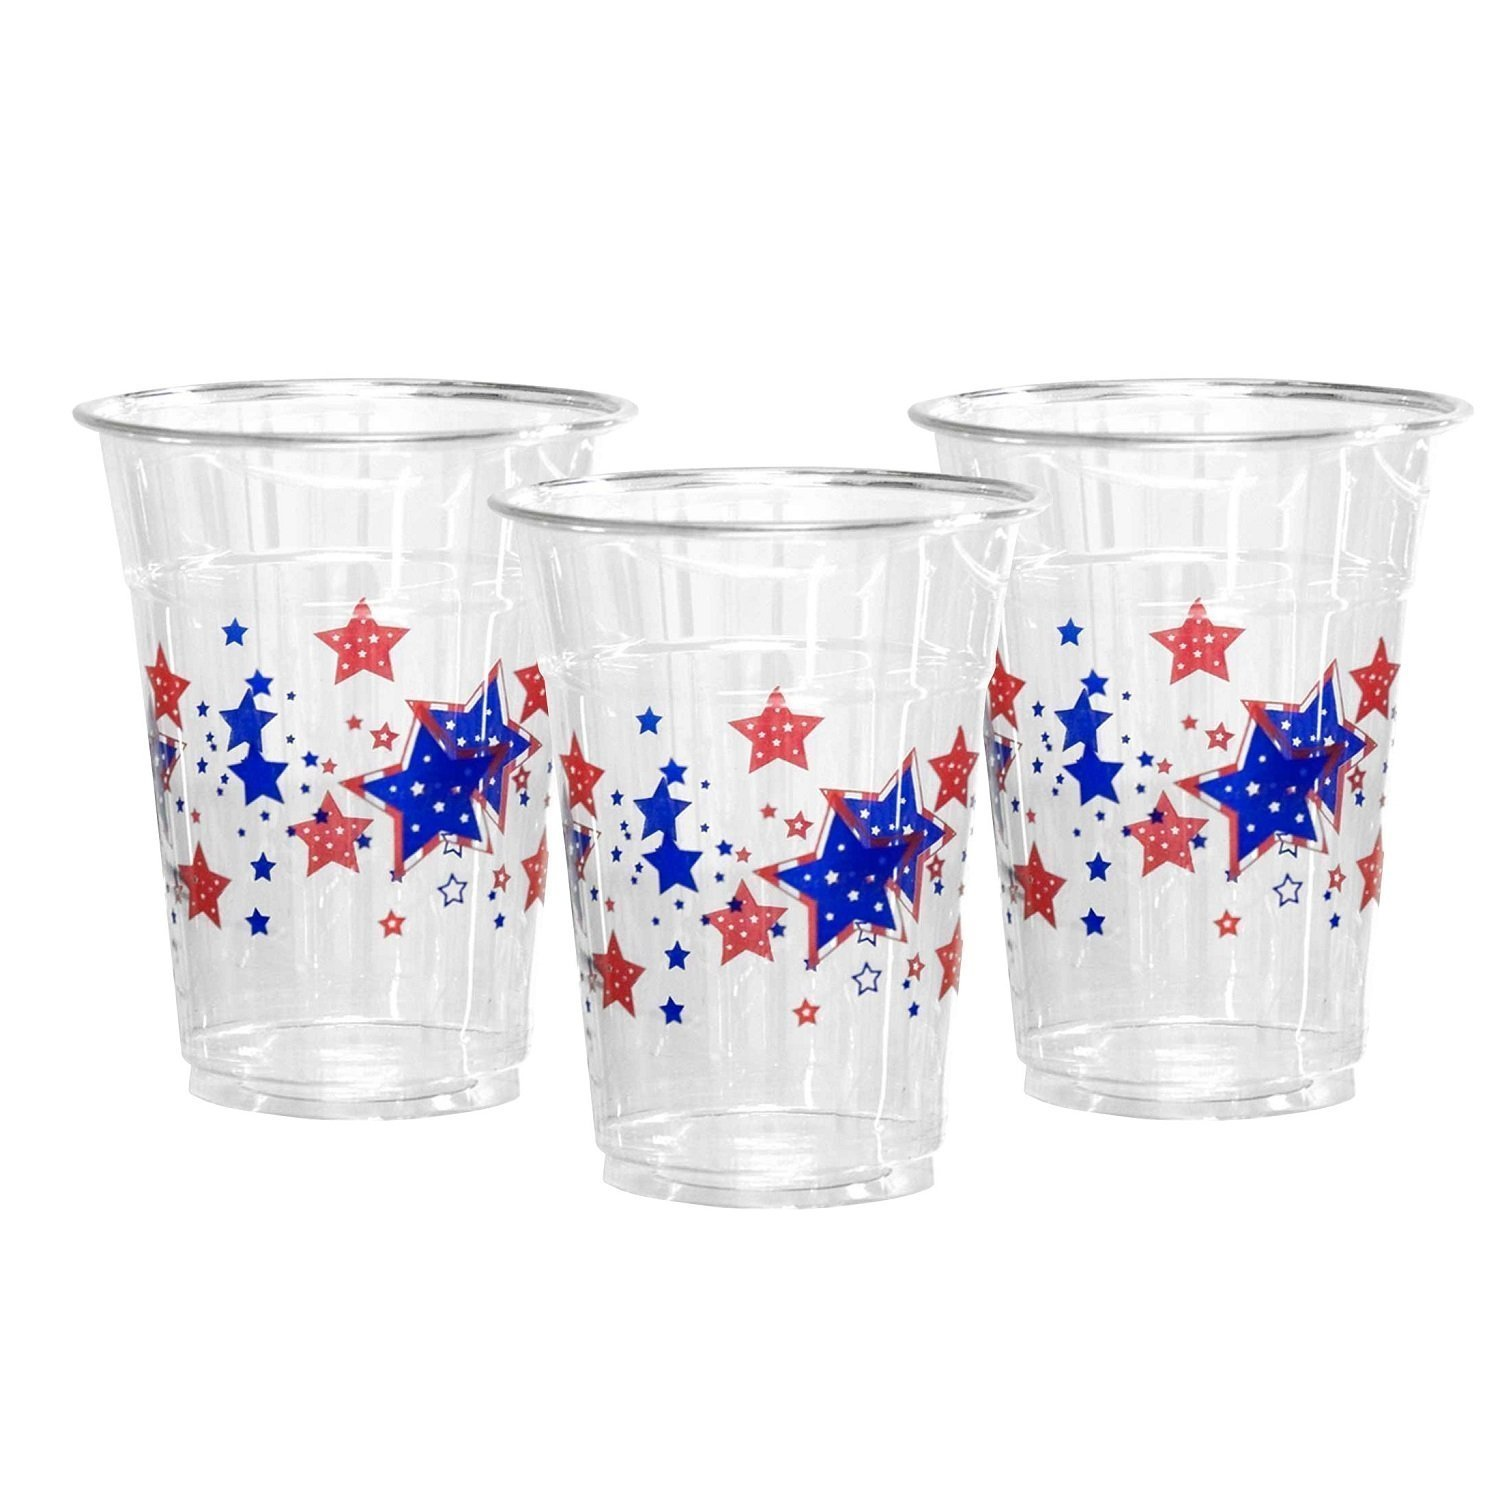 cups for your 4th of July BBQ